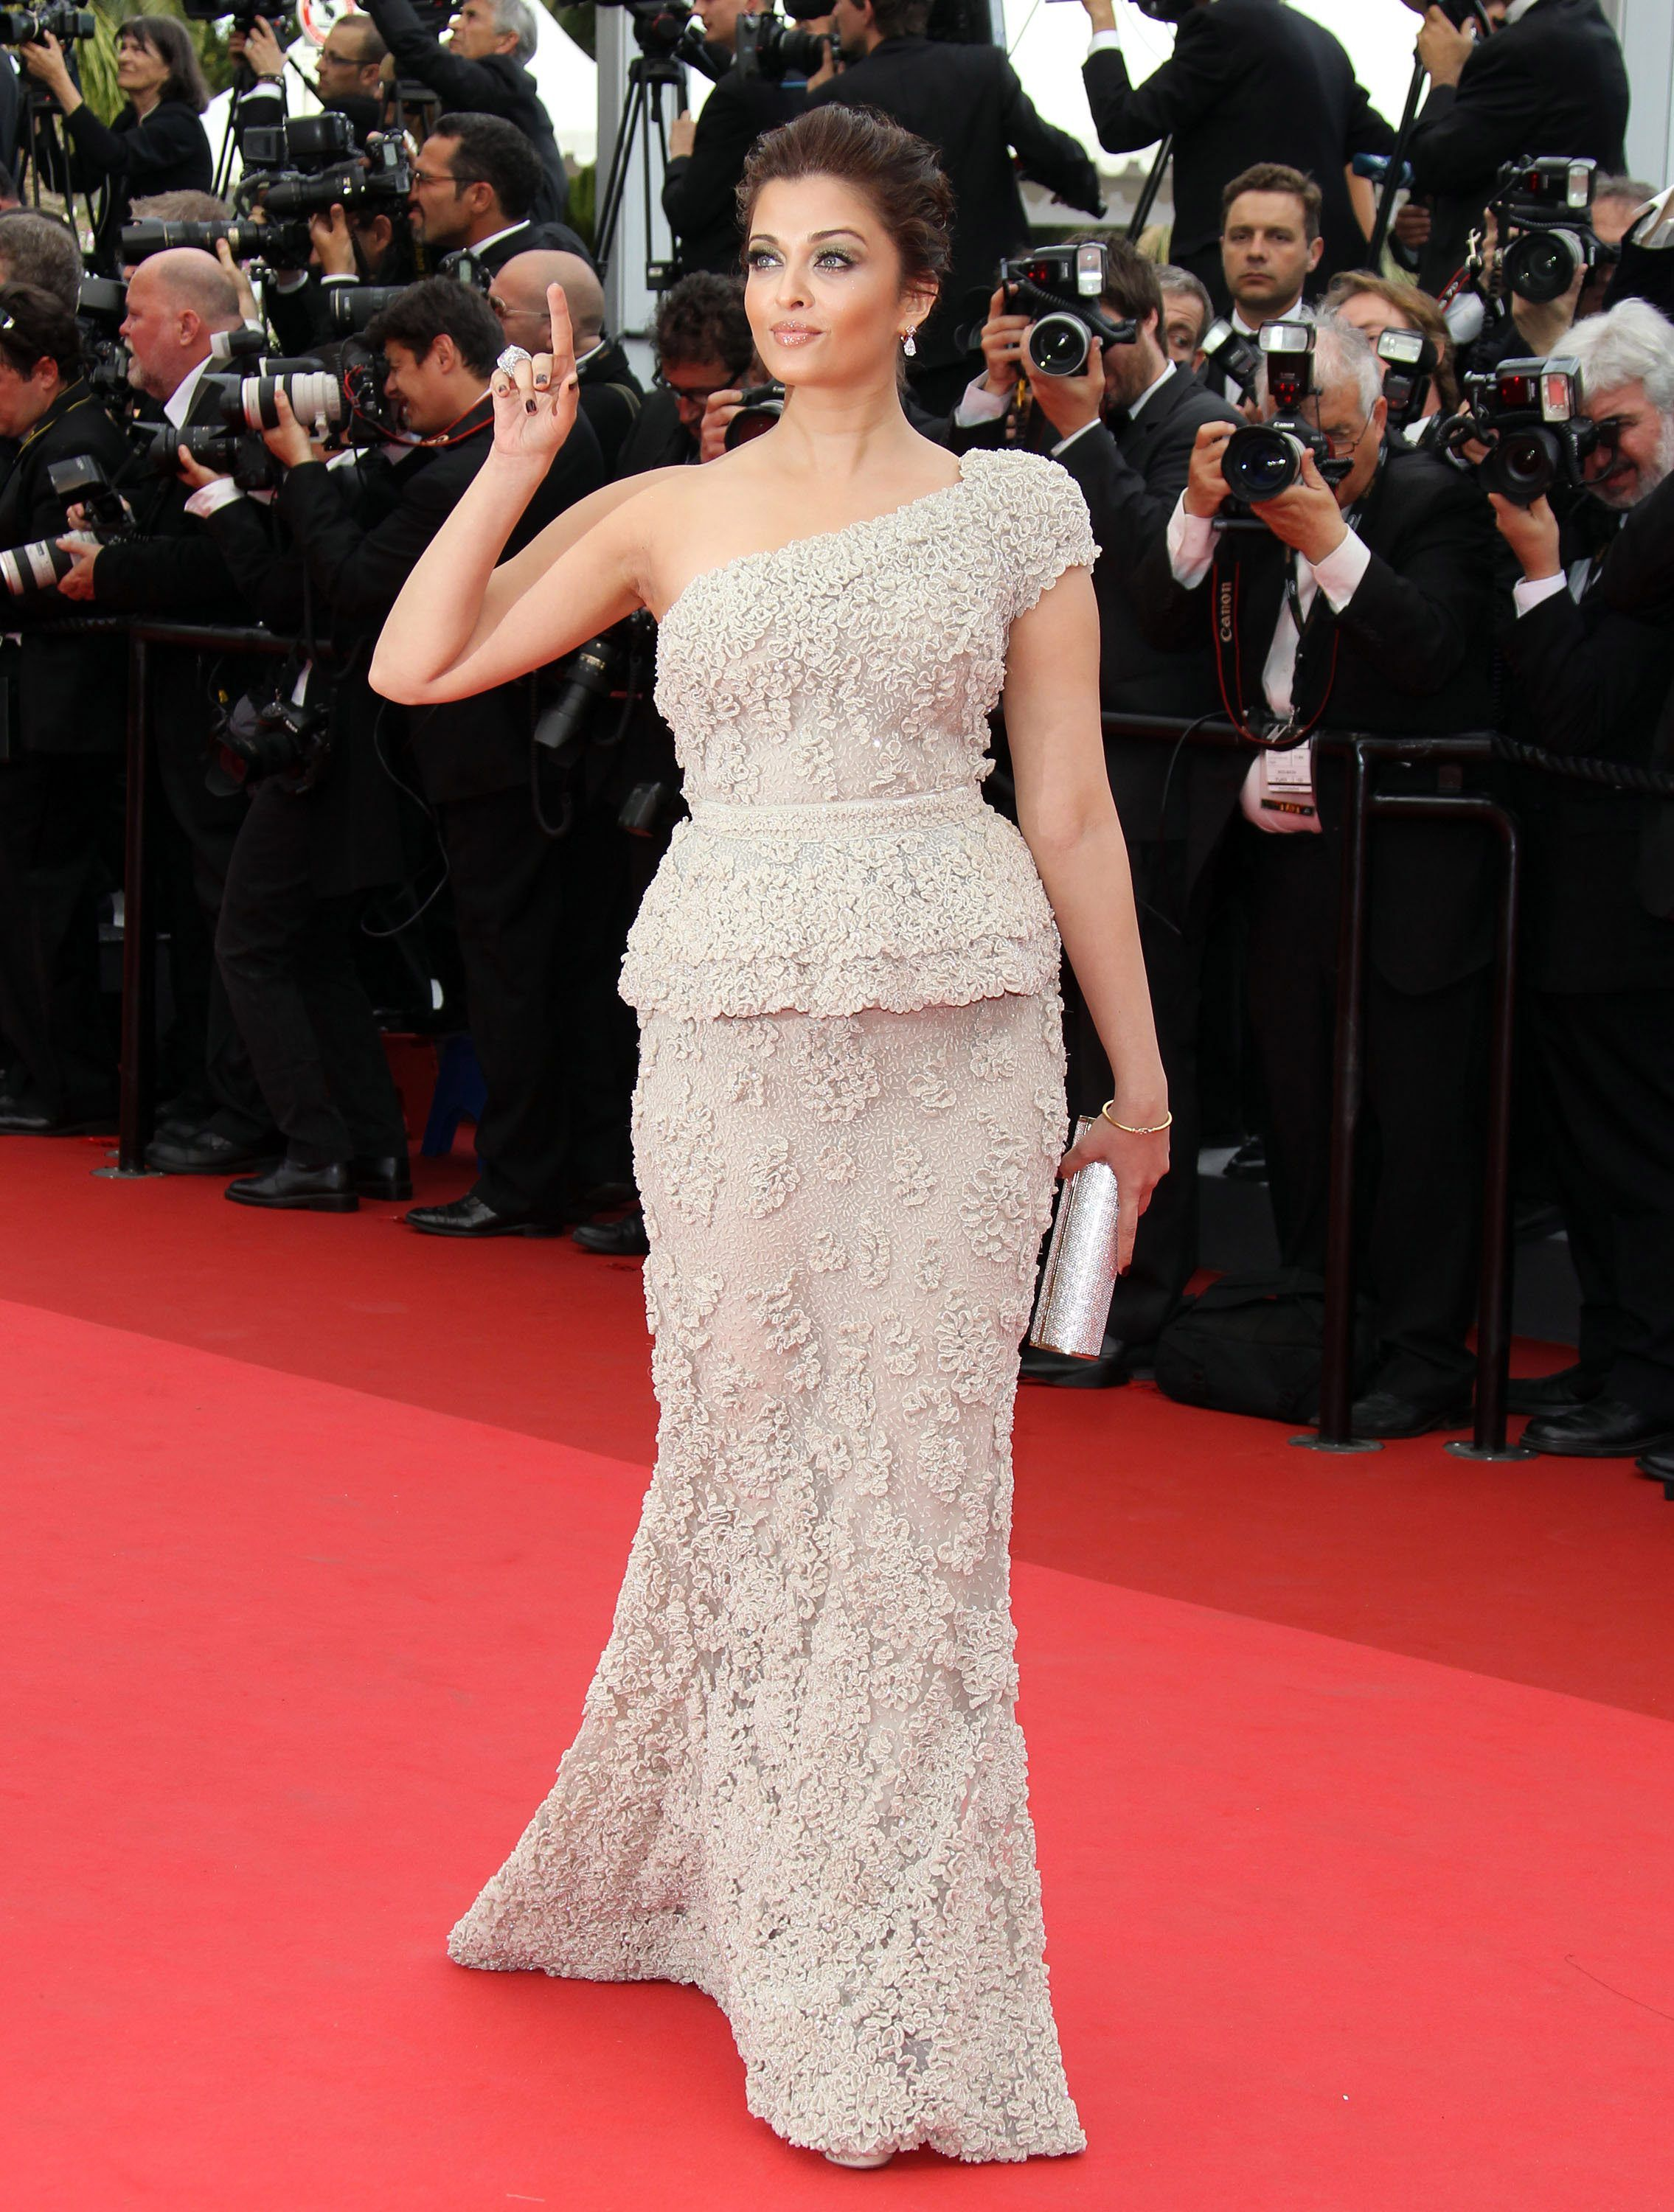 Aishwarya Cannes 2011 Midnight In Paris Premiere Fashion Forward Pinterest Cannes